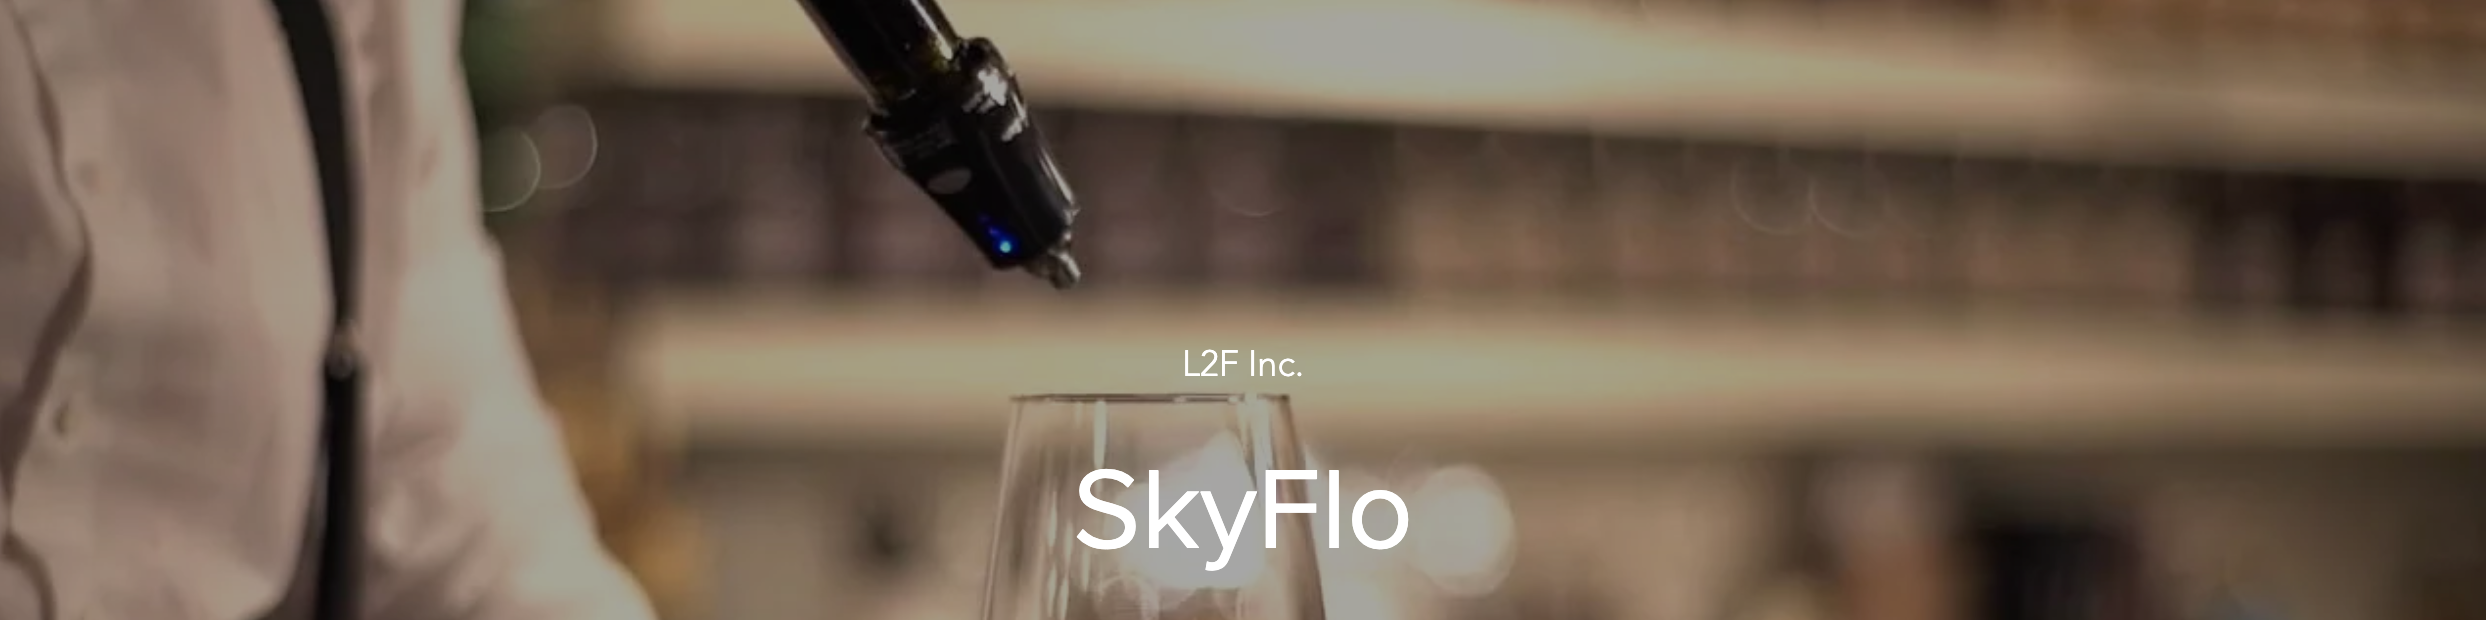 Measure the Perfect Pour with the SkyFlo Liquor Management System